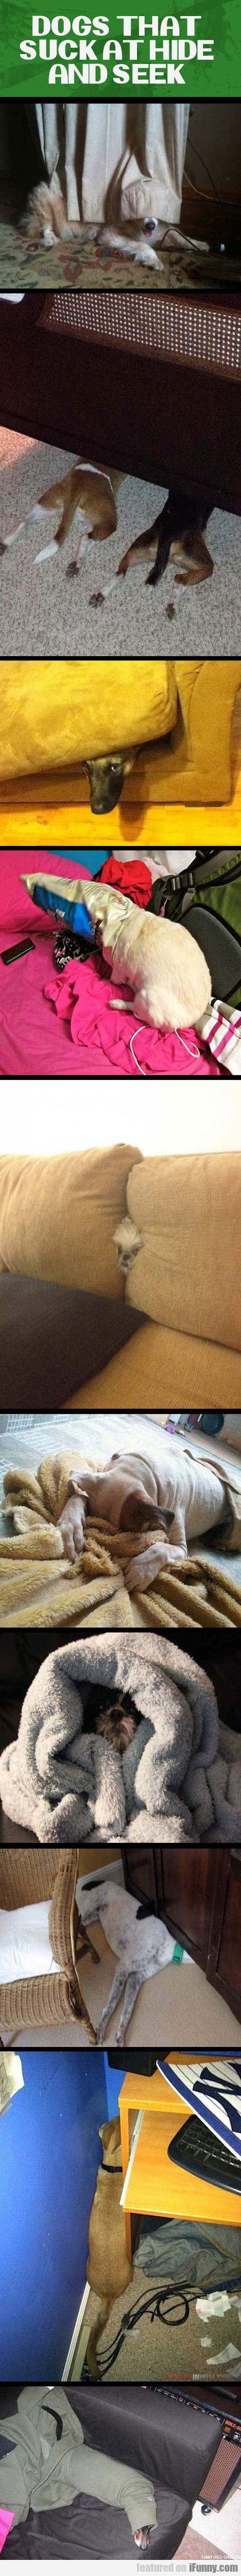 Dogs That Suck At Hide And Seek